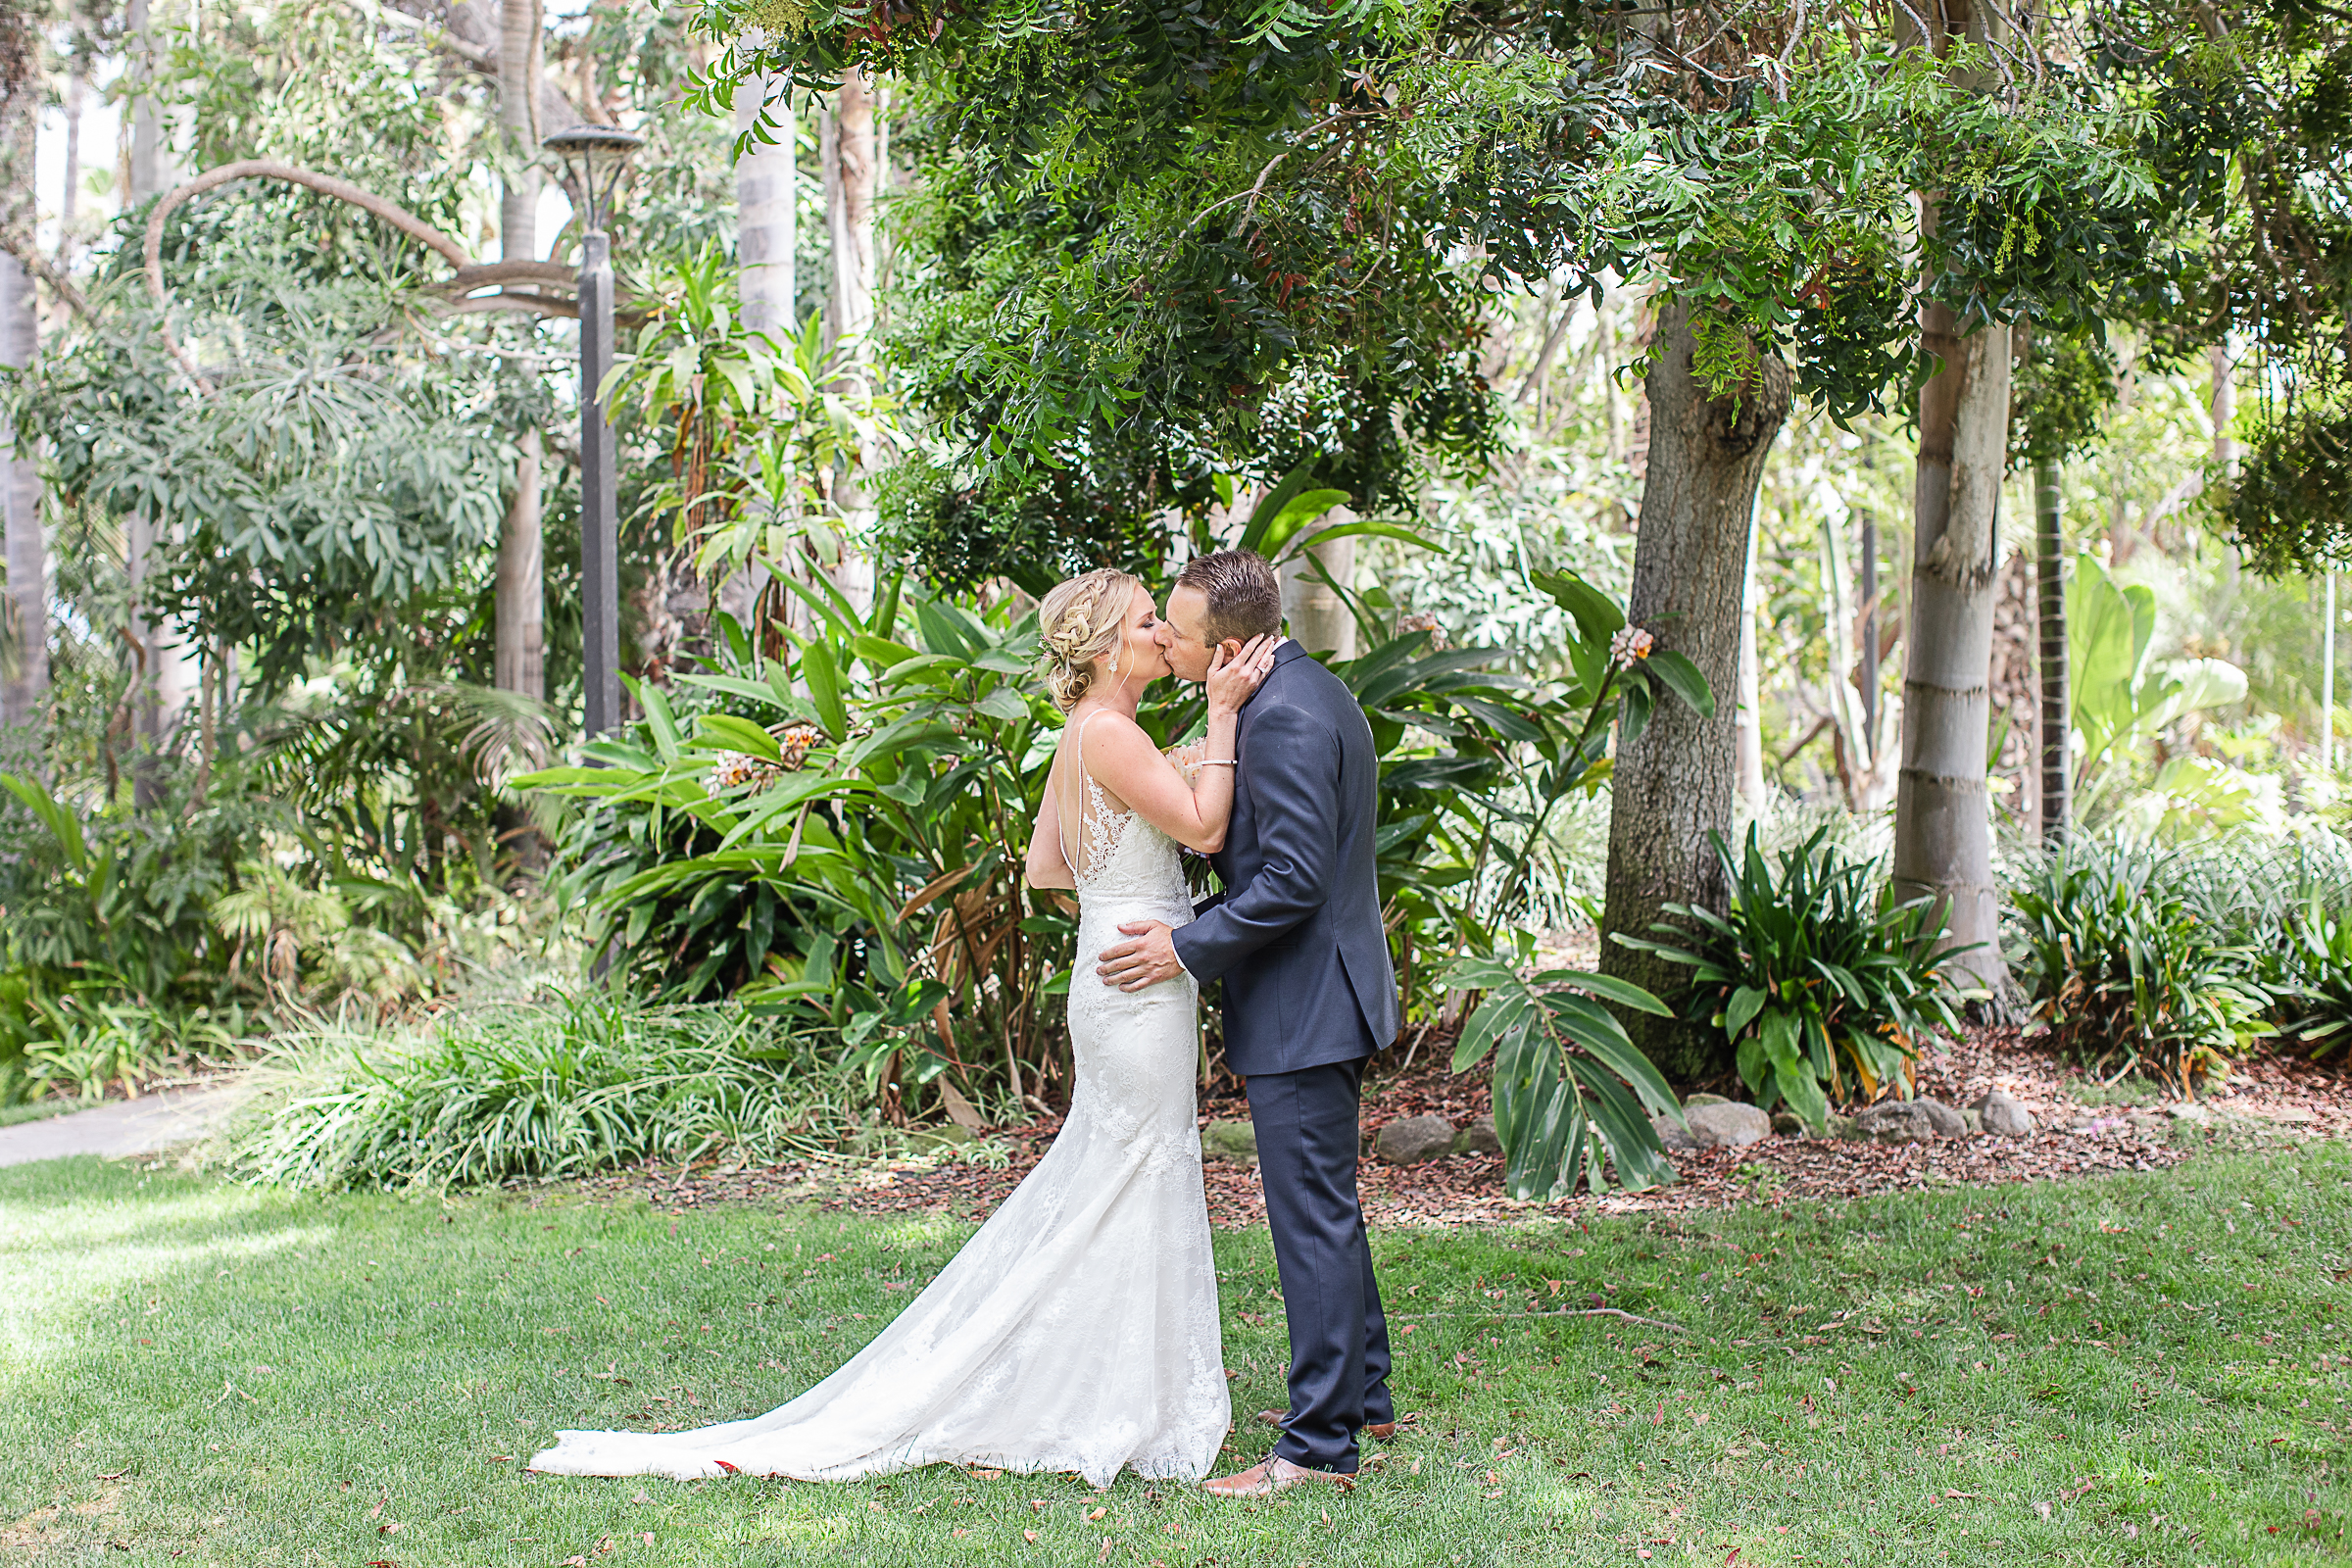 Heather and Chad's Wedding at Coronado community Center and Paradise Point-15.jpg